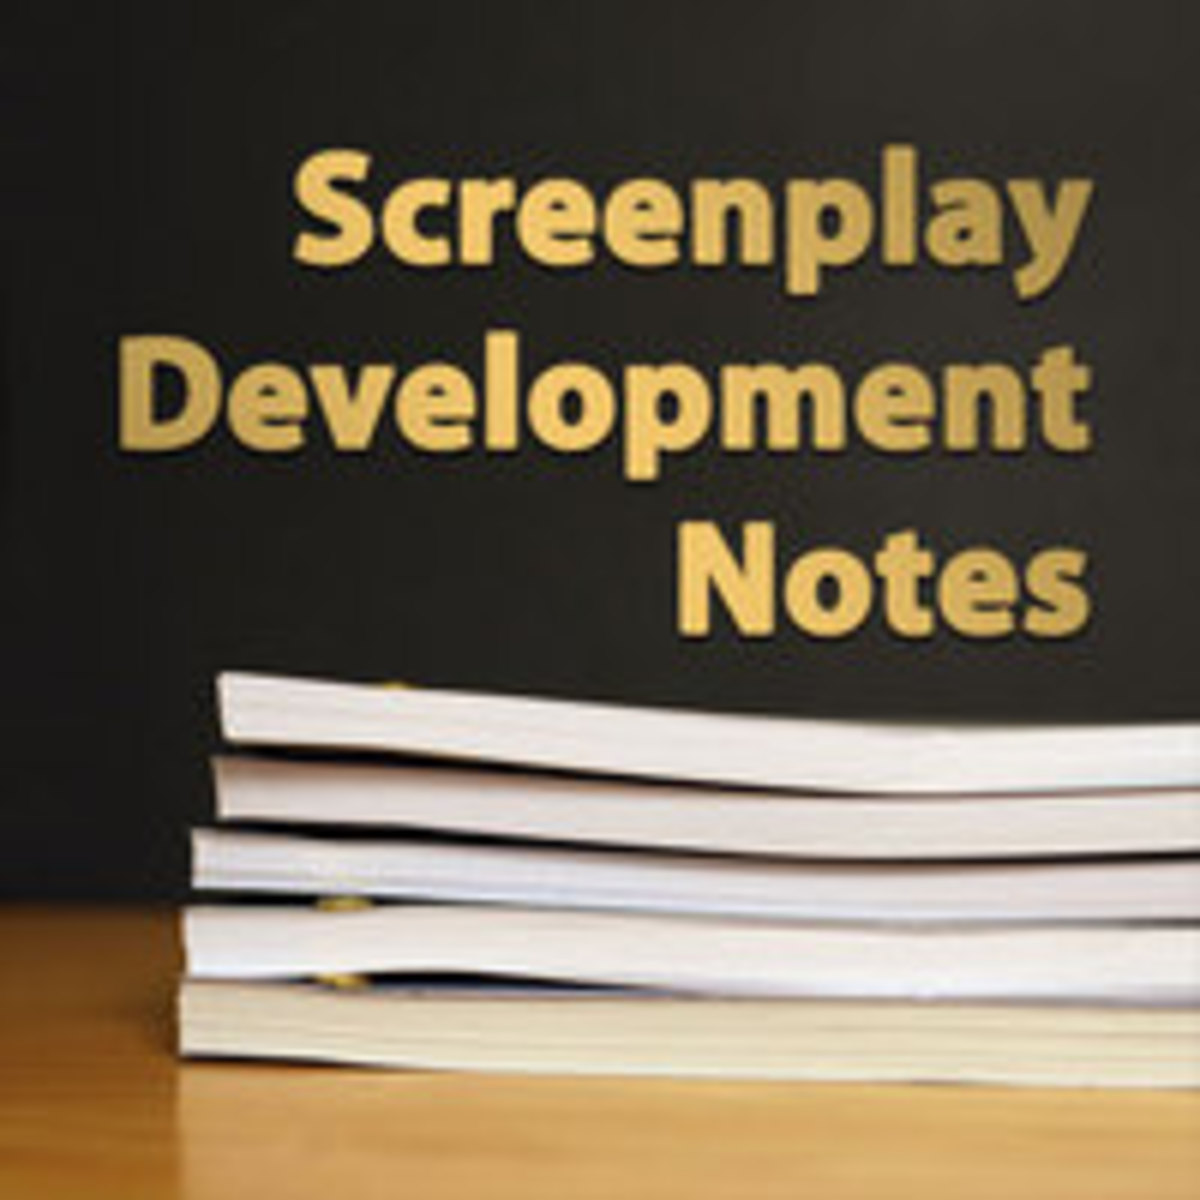 screenplay-development-notes_small